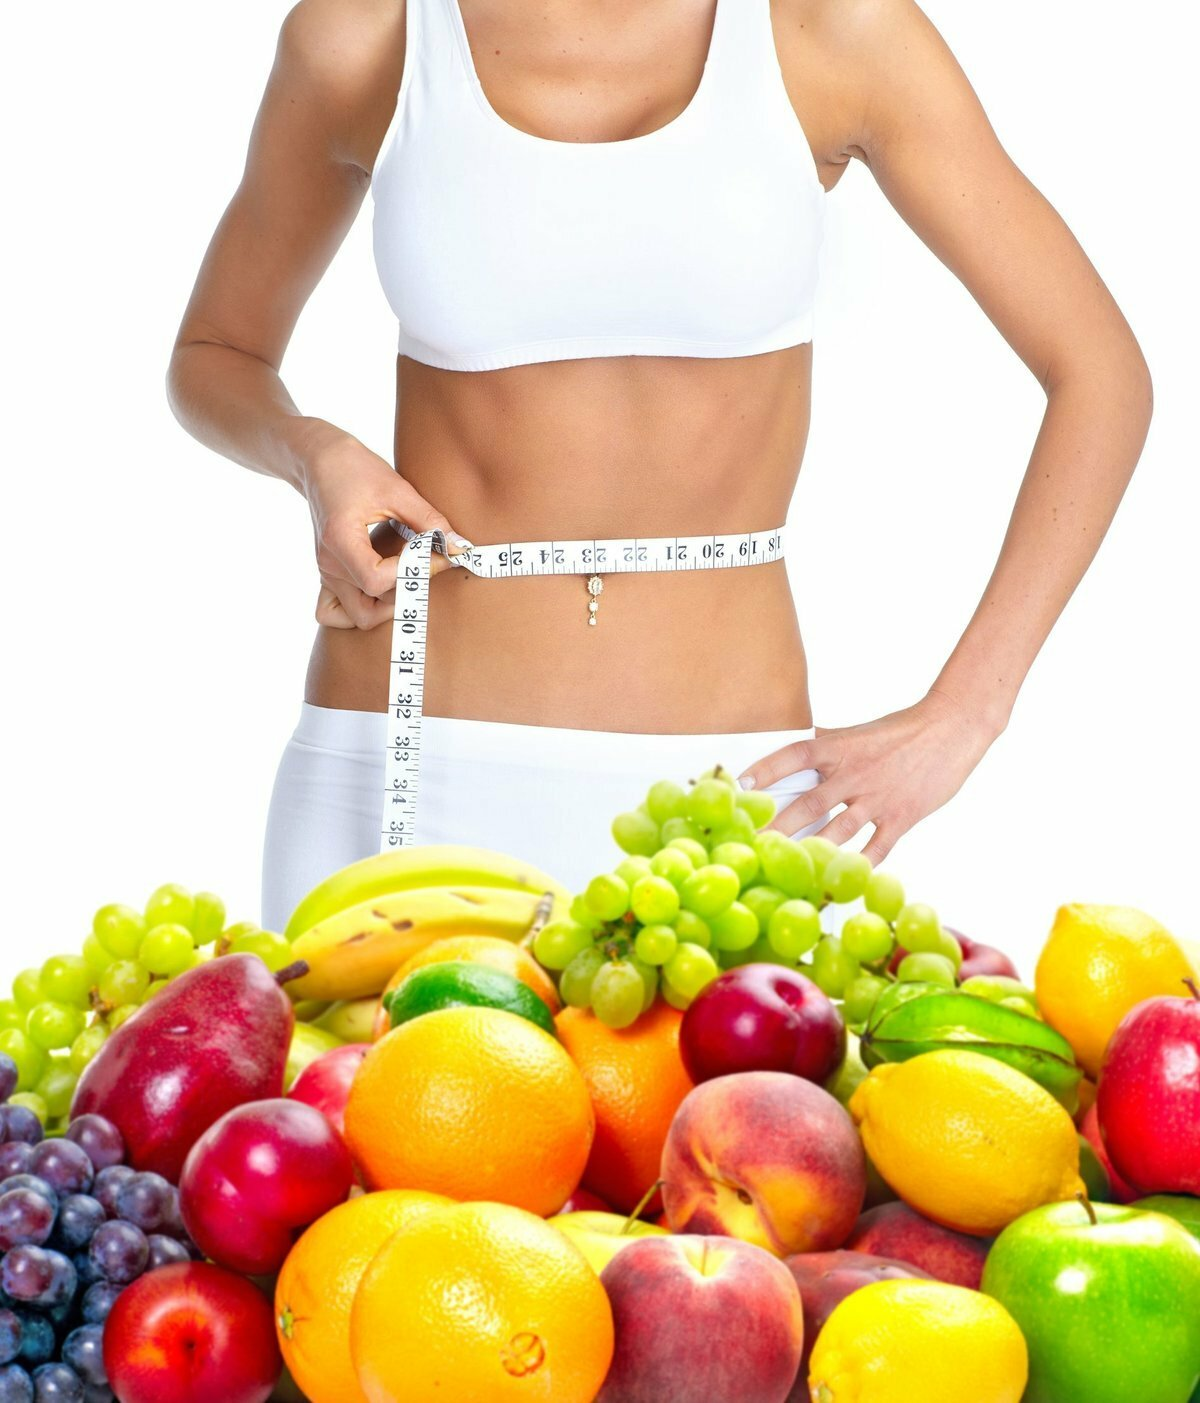 tumblr meanspo and weight loss pictures - HD1200×1403